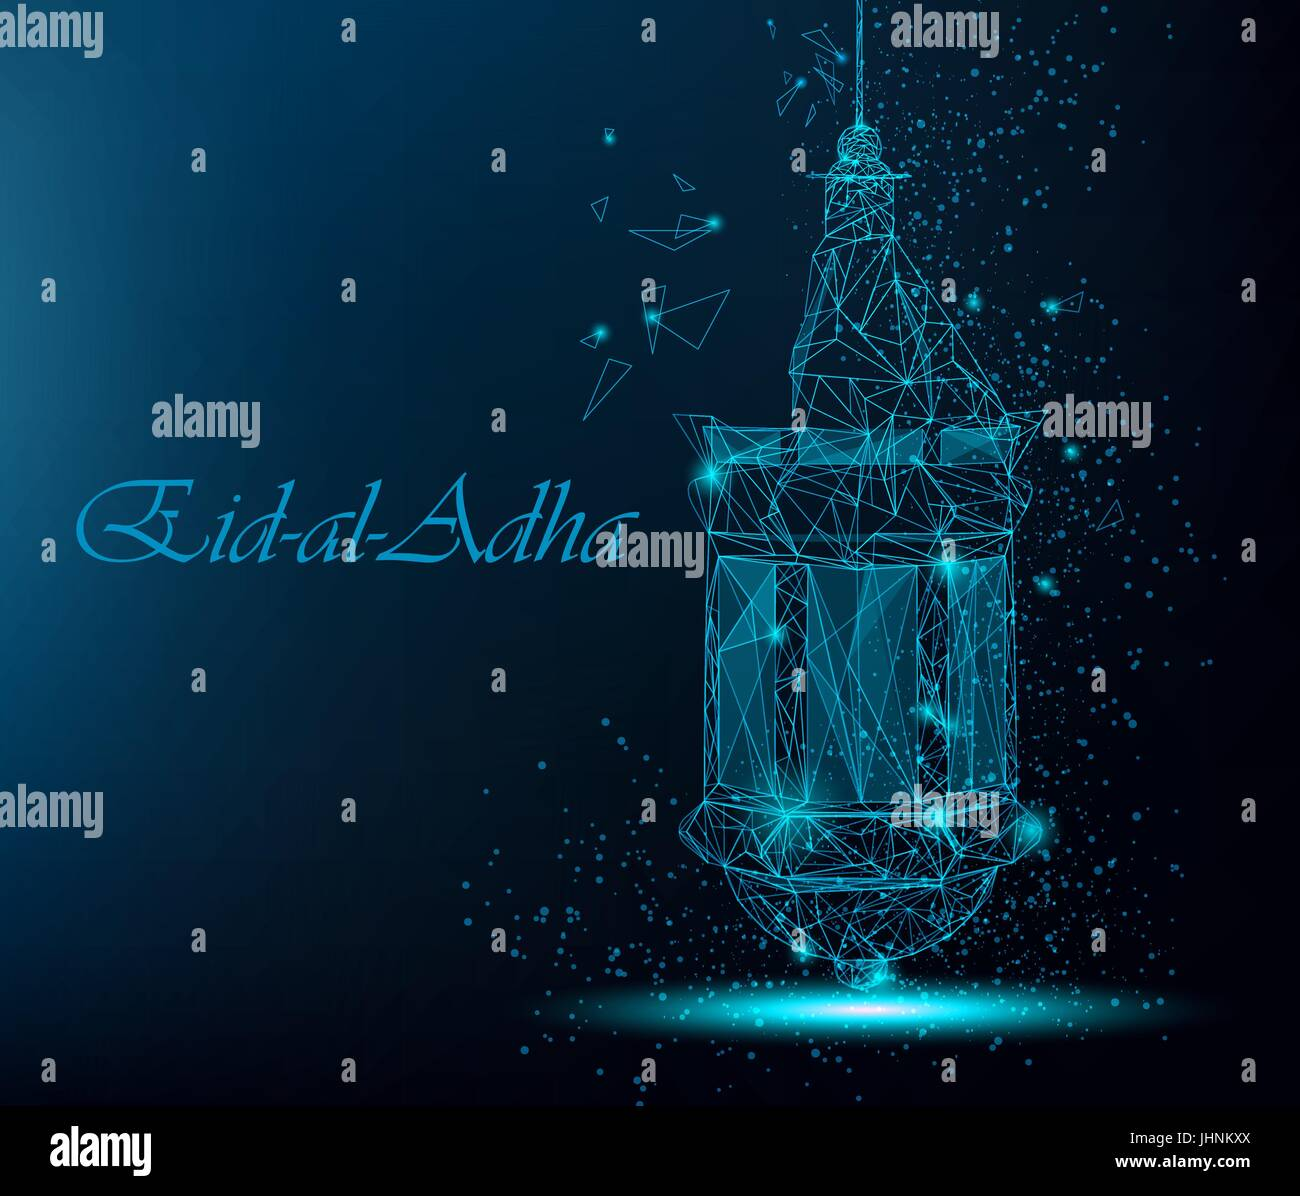 Eid al adha beautiful greeting card with traditional arabic lantern eid al adha beautiful greeting card with traditional arabic lantern polygonal art on blue background stock vector m4hsunfo